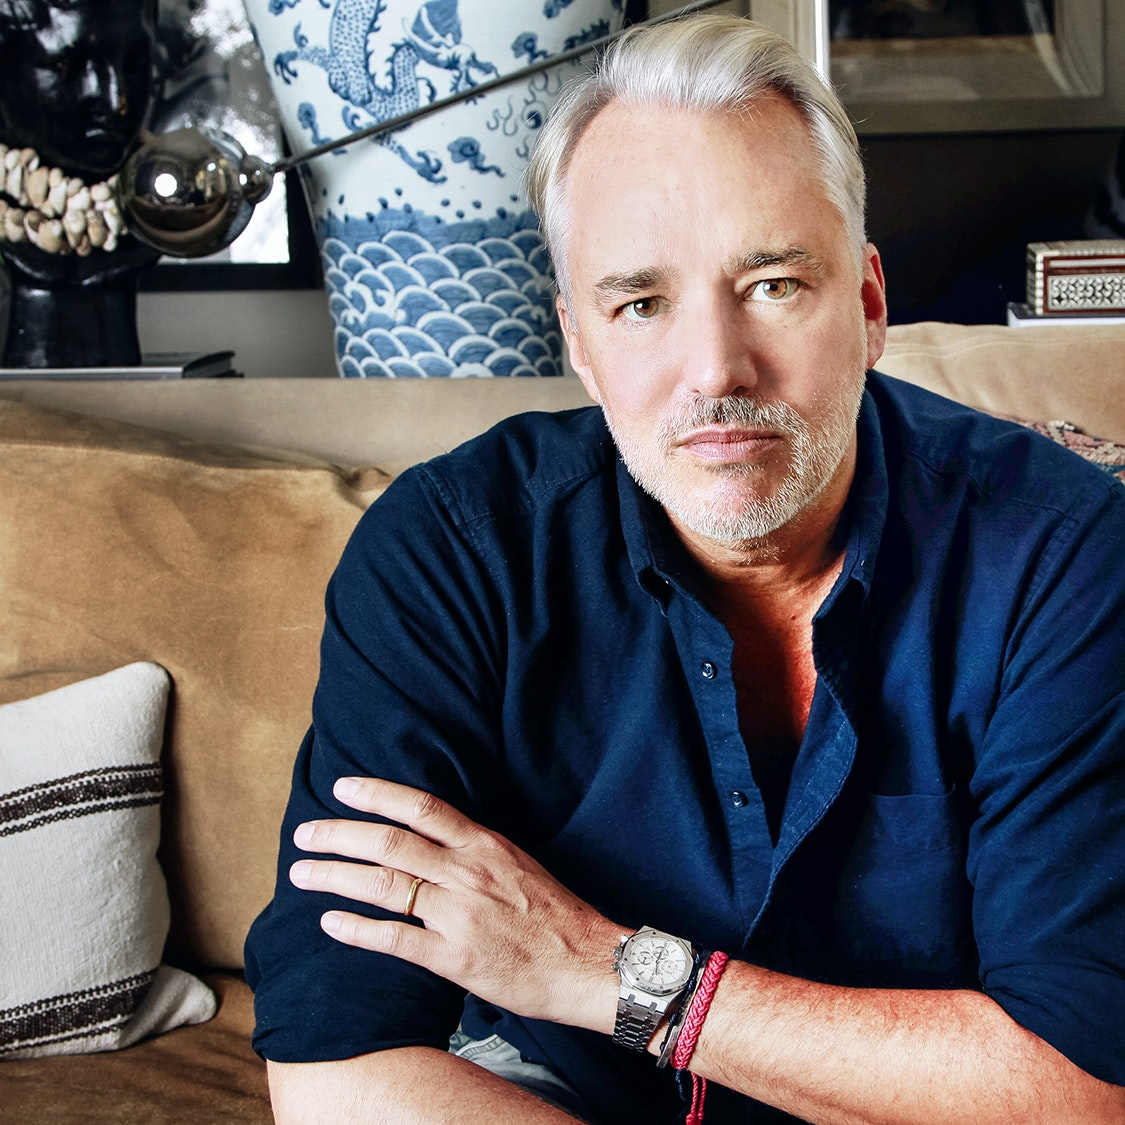 Fashion Designer Michael Bastian Divulges His Grooming, Skincare, and Wellness Routines